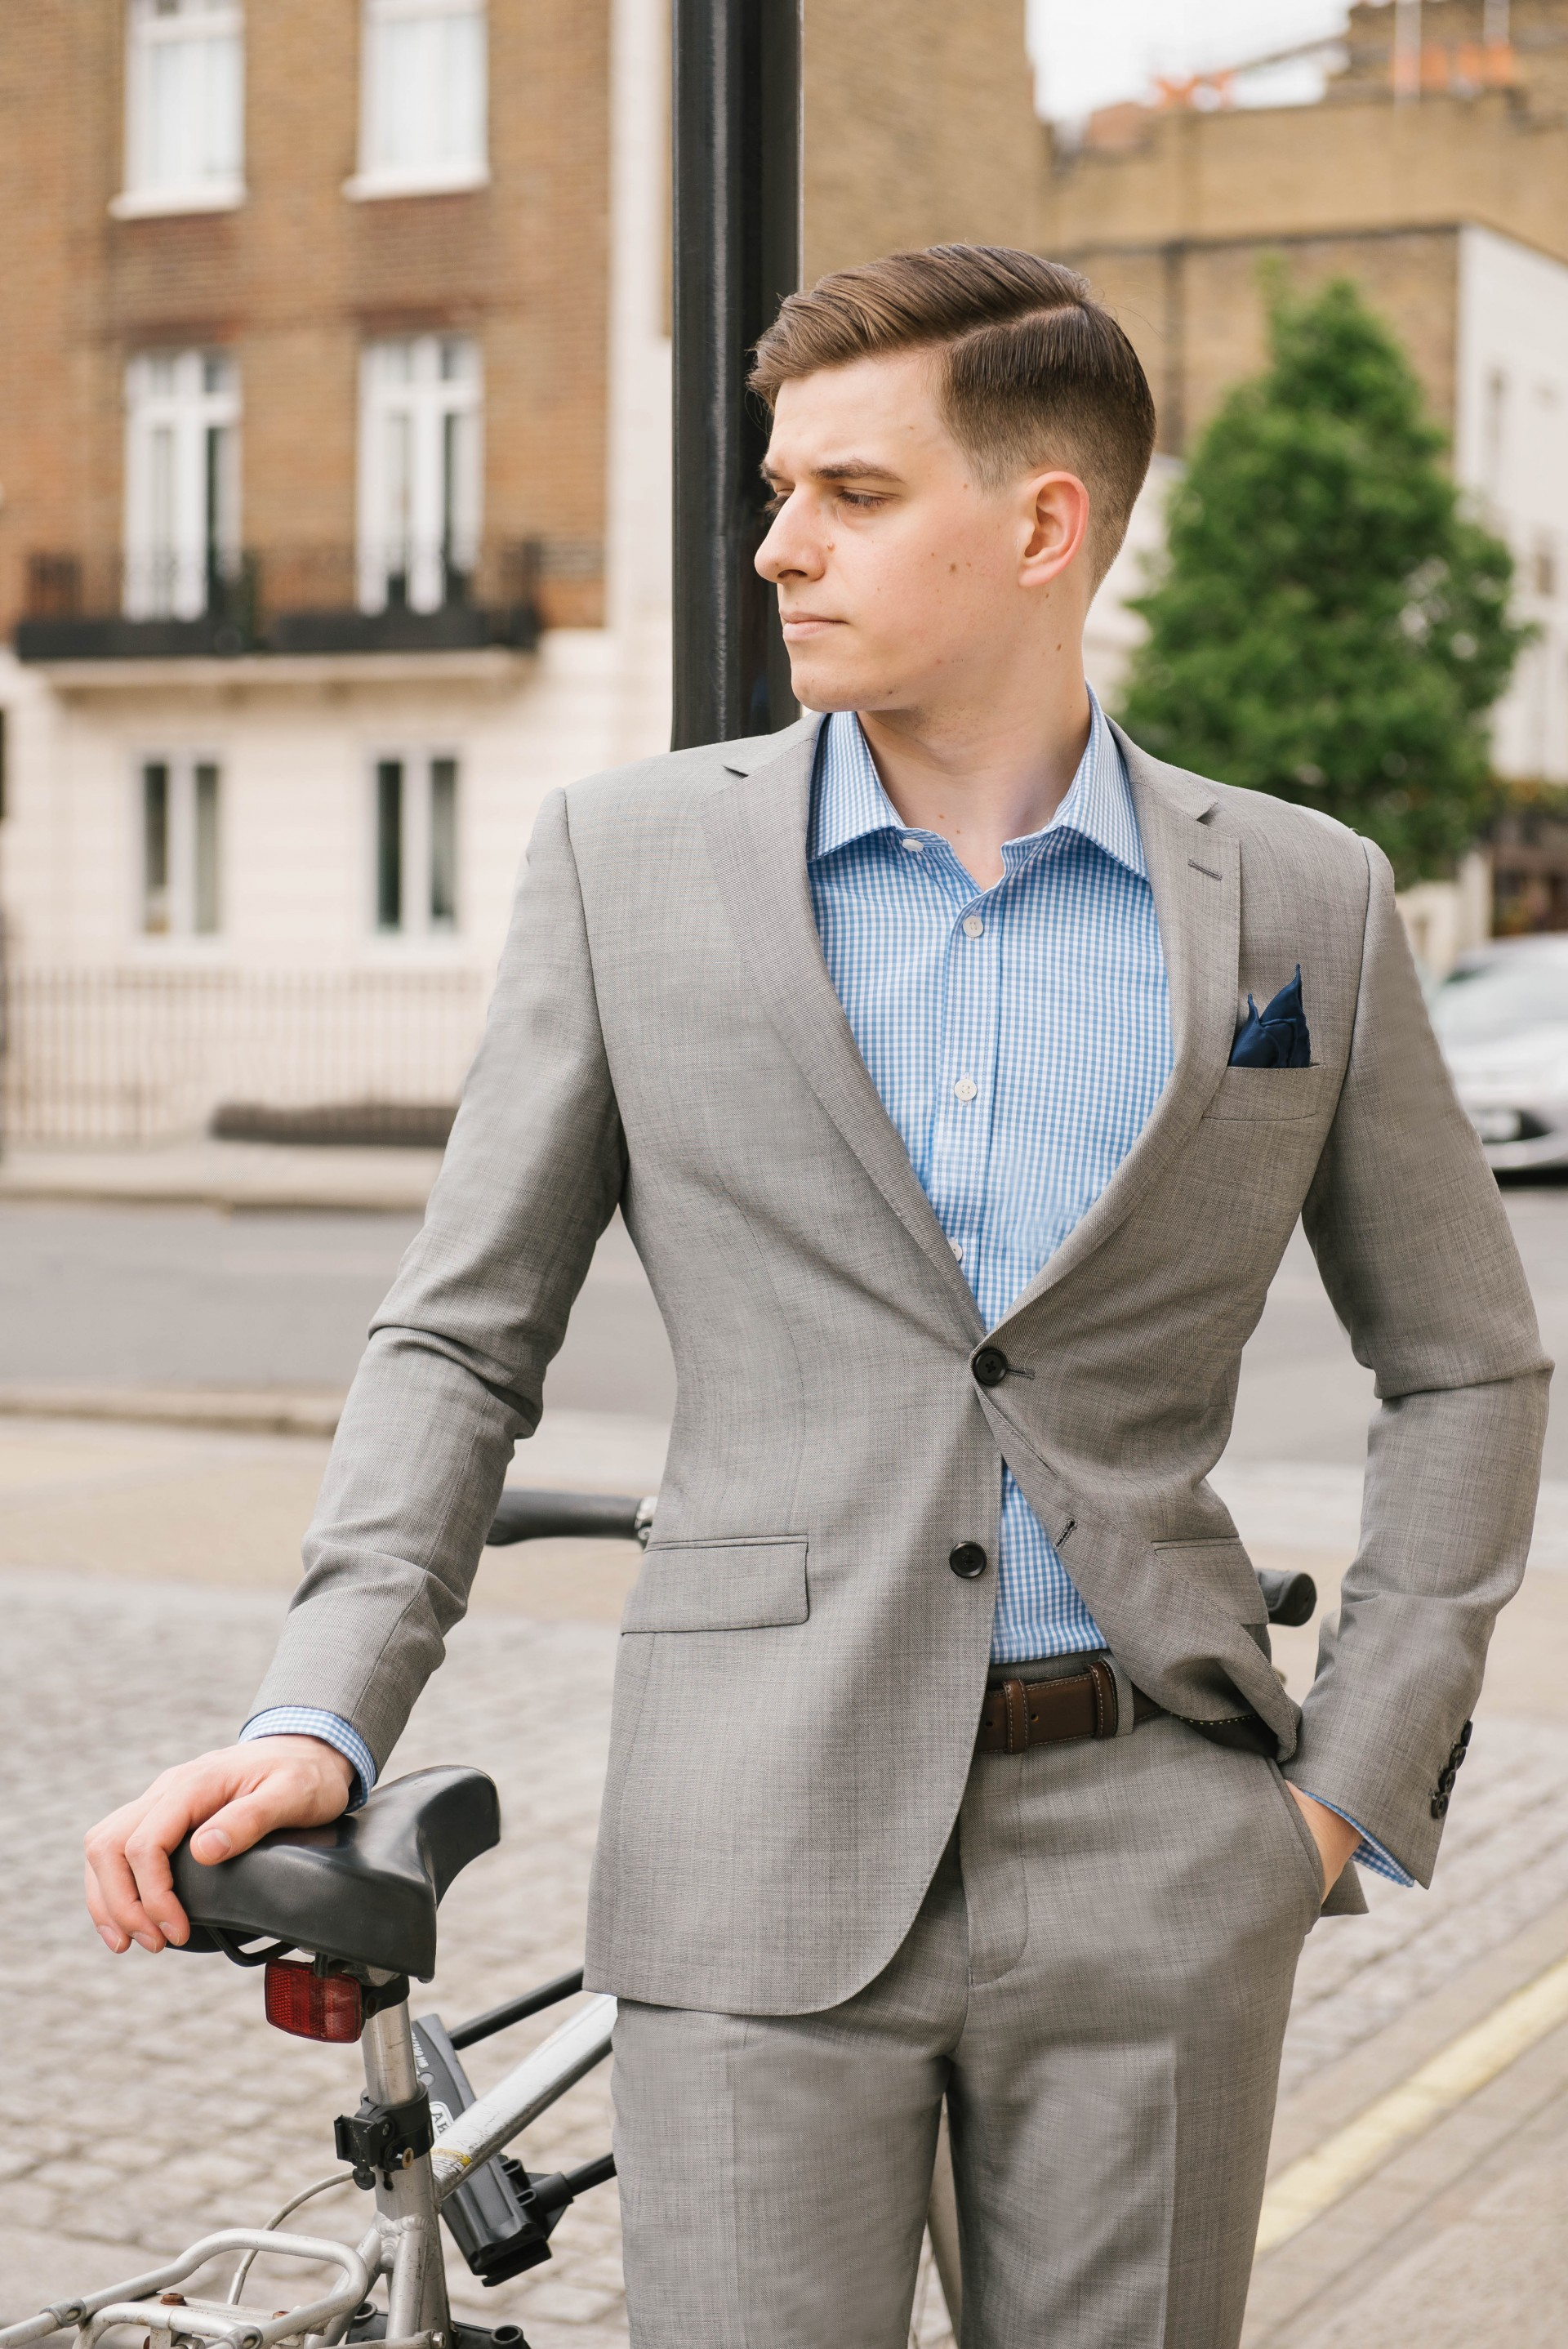 Men's Suit Style - Grey Suit & Blue Gingham 2